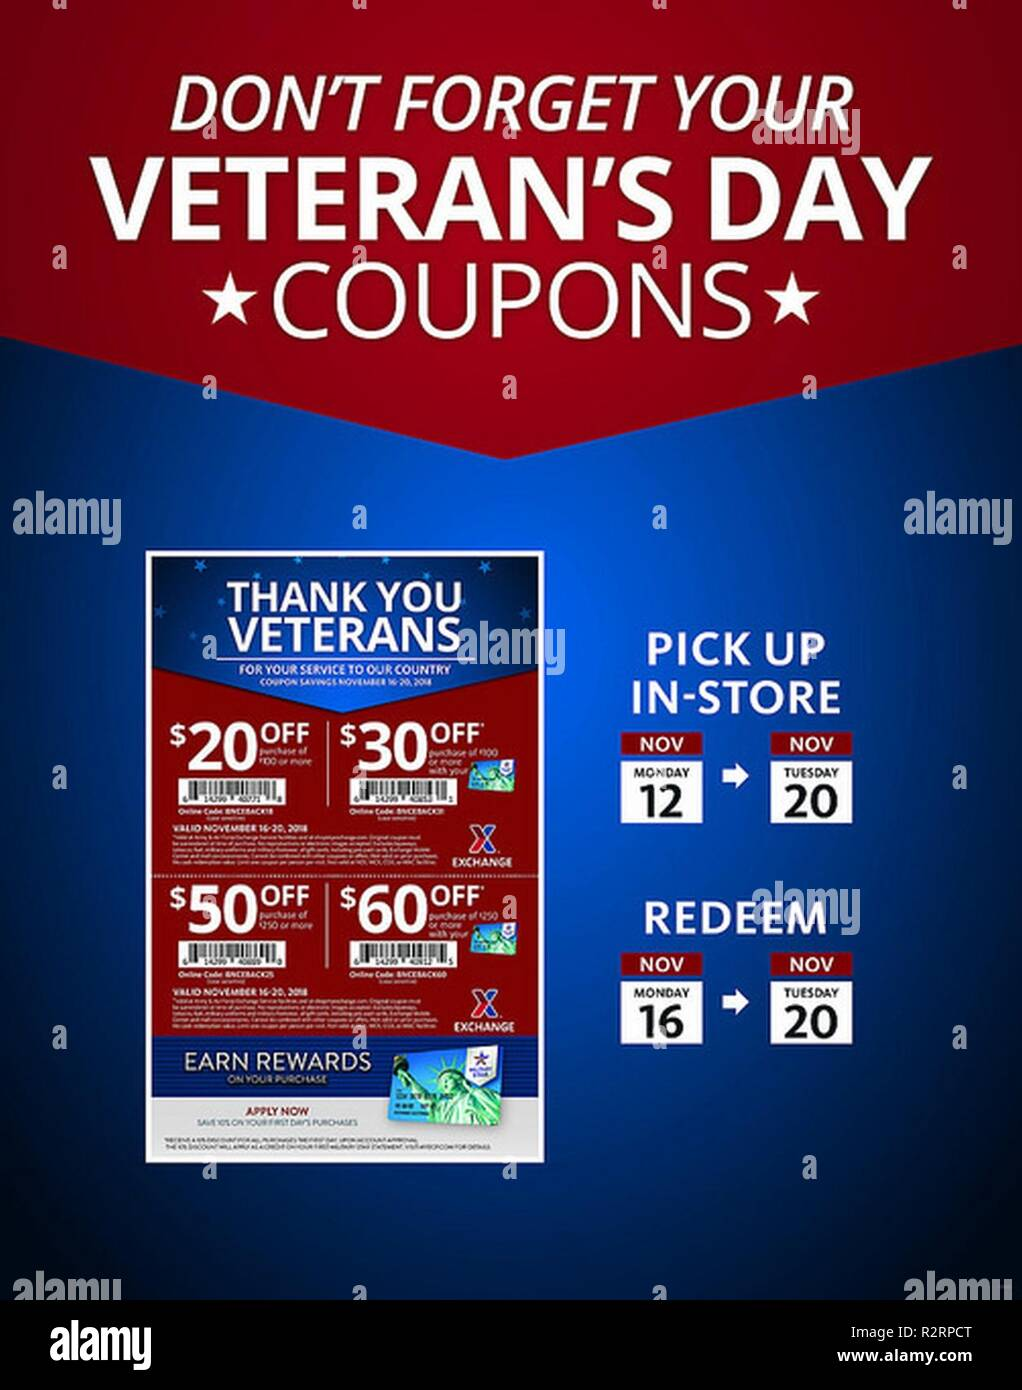 1d022de13dfd0 Warfighters and their families can score additional holiday savings by  simply shopping with the Army & Air Force Exchange Service from Nov. 12  through 20.